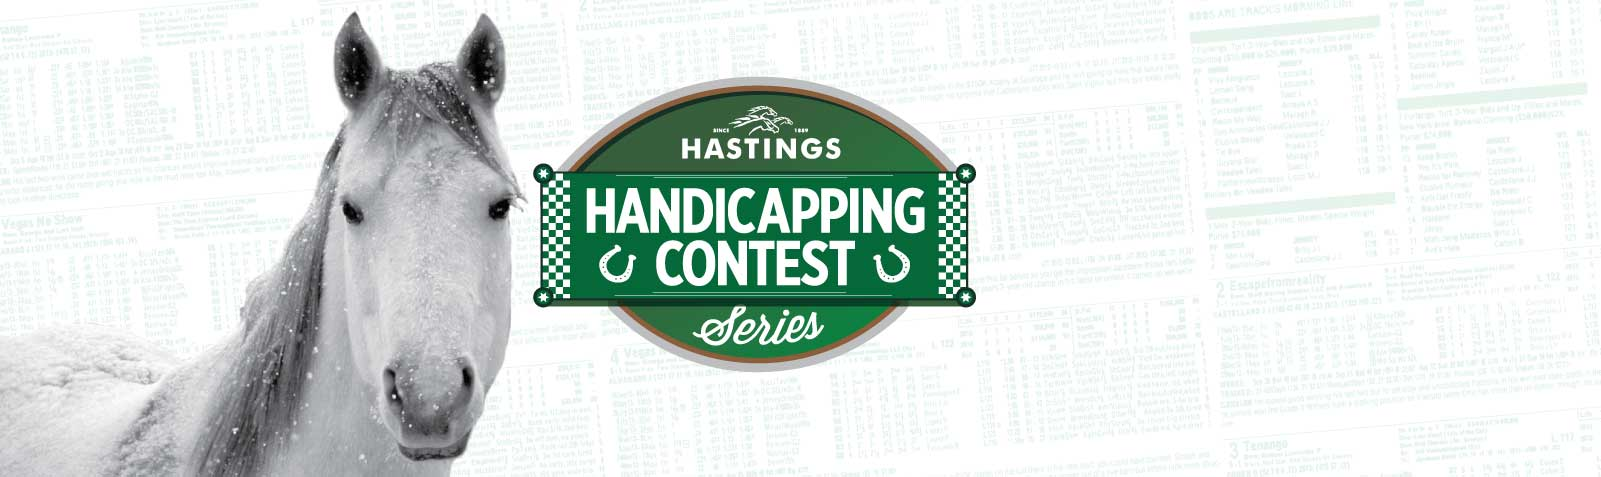 HPI16-281-2016-Hastings-Handicapping-Series-Part-II-Slider